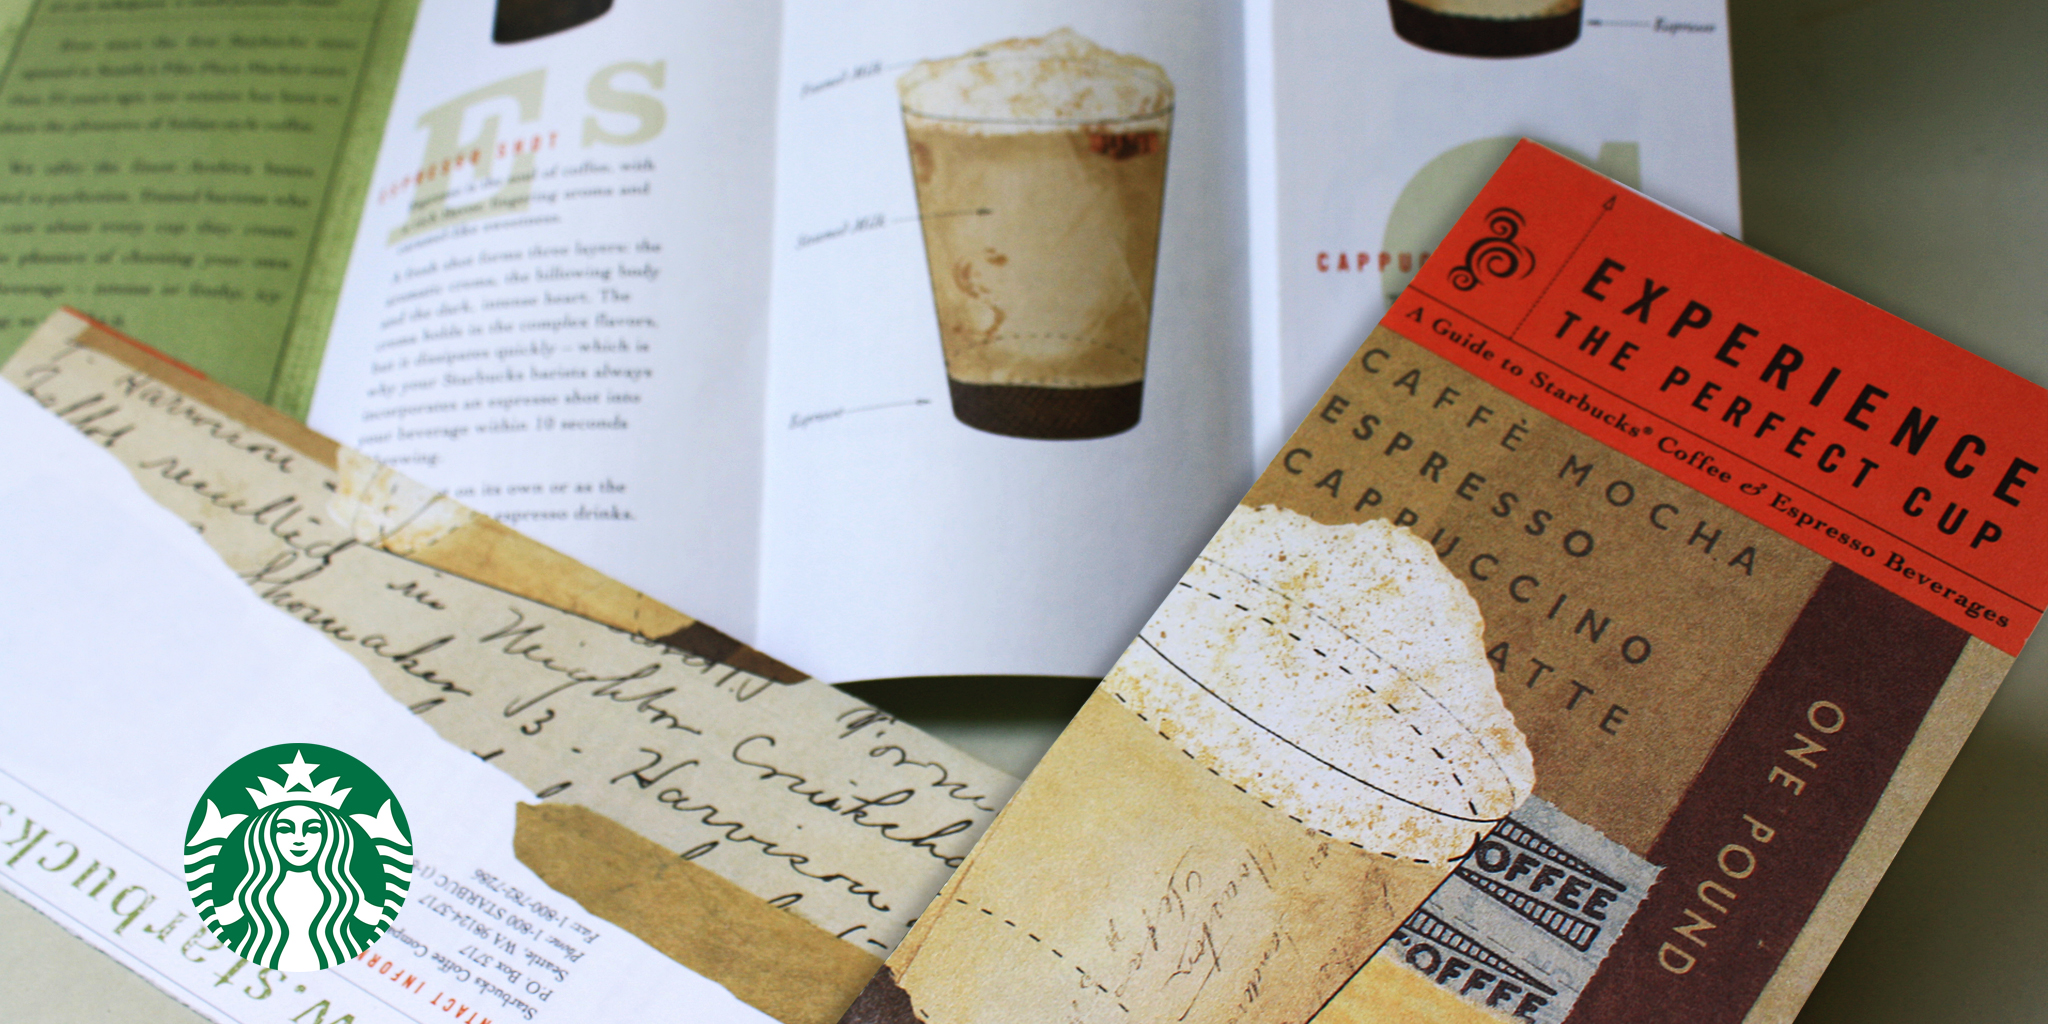 BROCHURE / ILLUSTRATION  Starbucks Coffee  This brochure system was one of six that communicated various coffee education to Starbuck's customers. The use of ephemeral collage in layers was an effective approach in depicting what goes into each type of coffee.